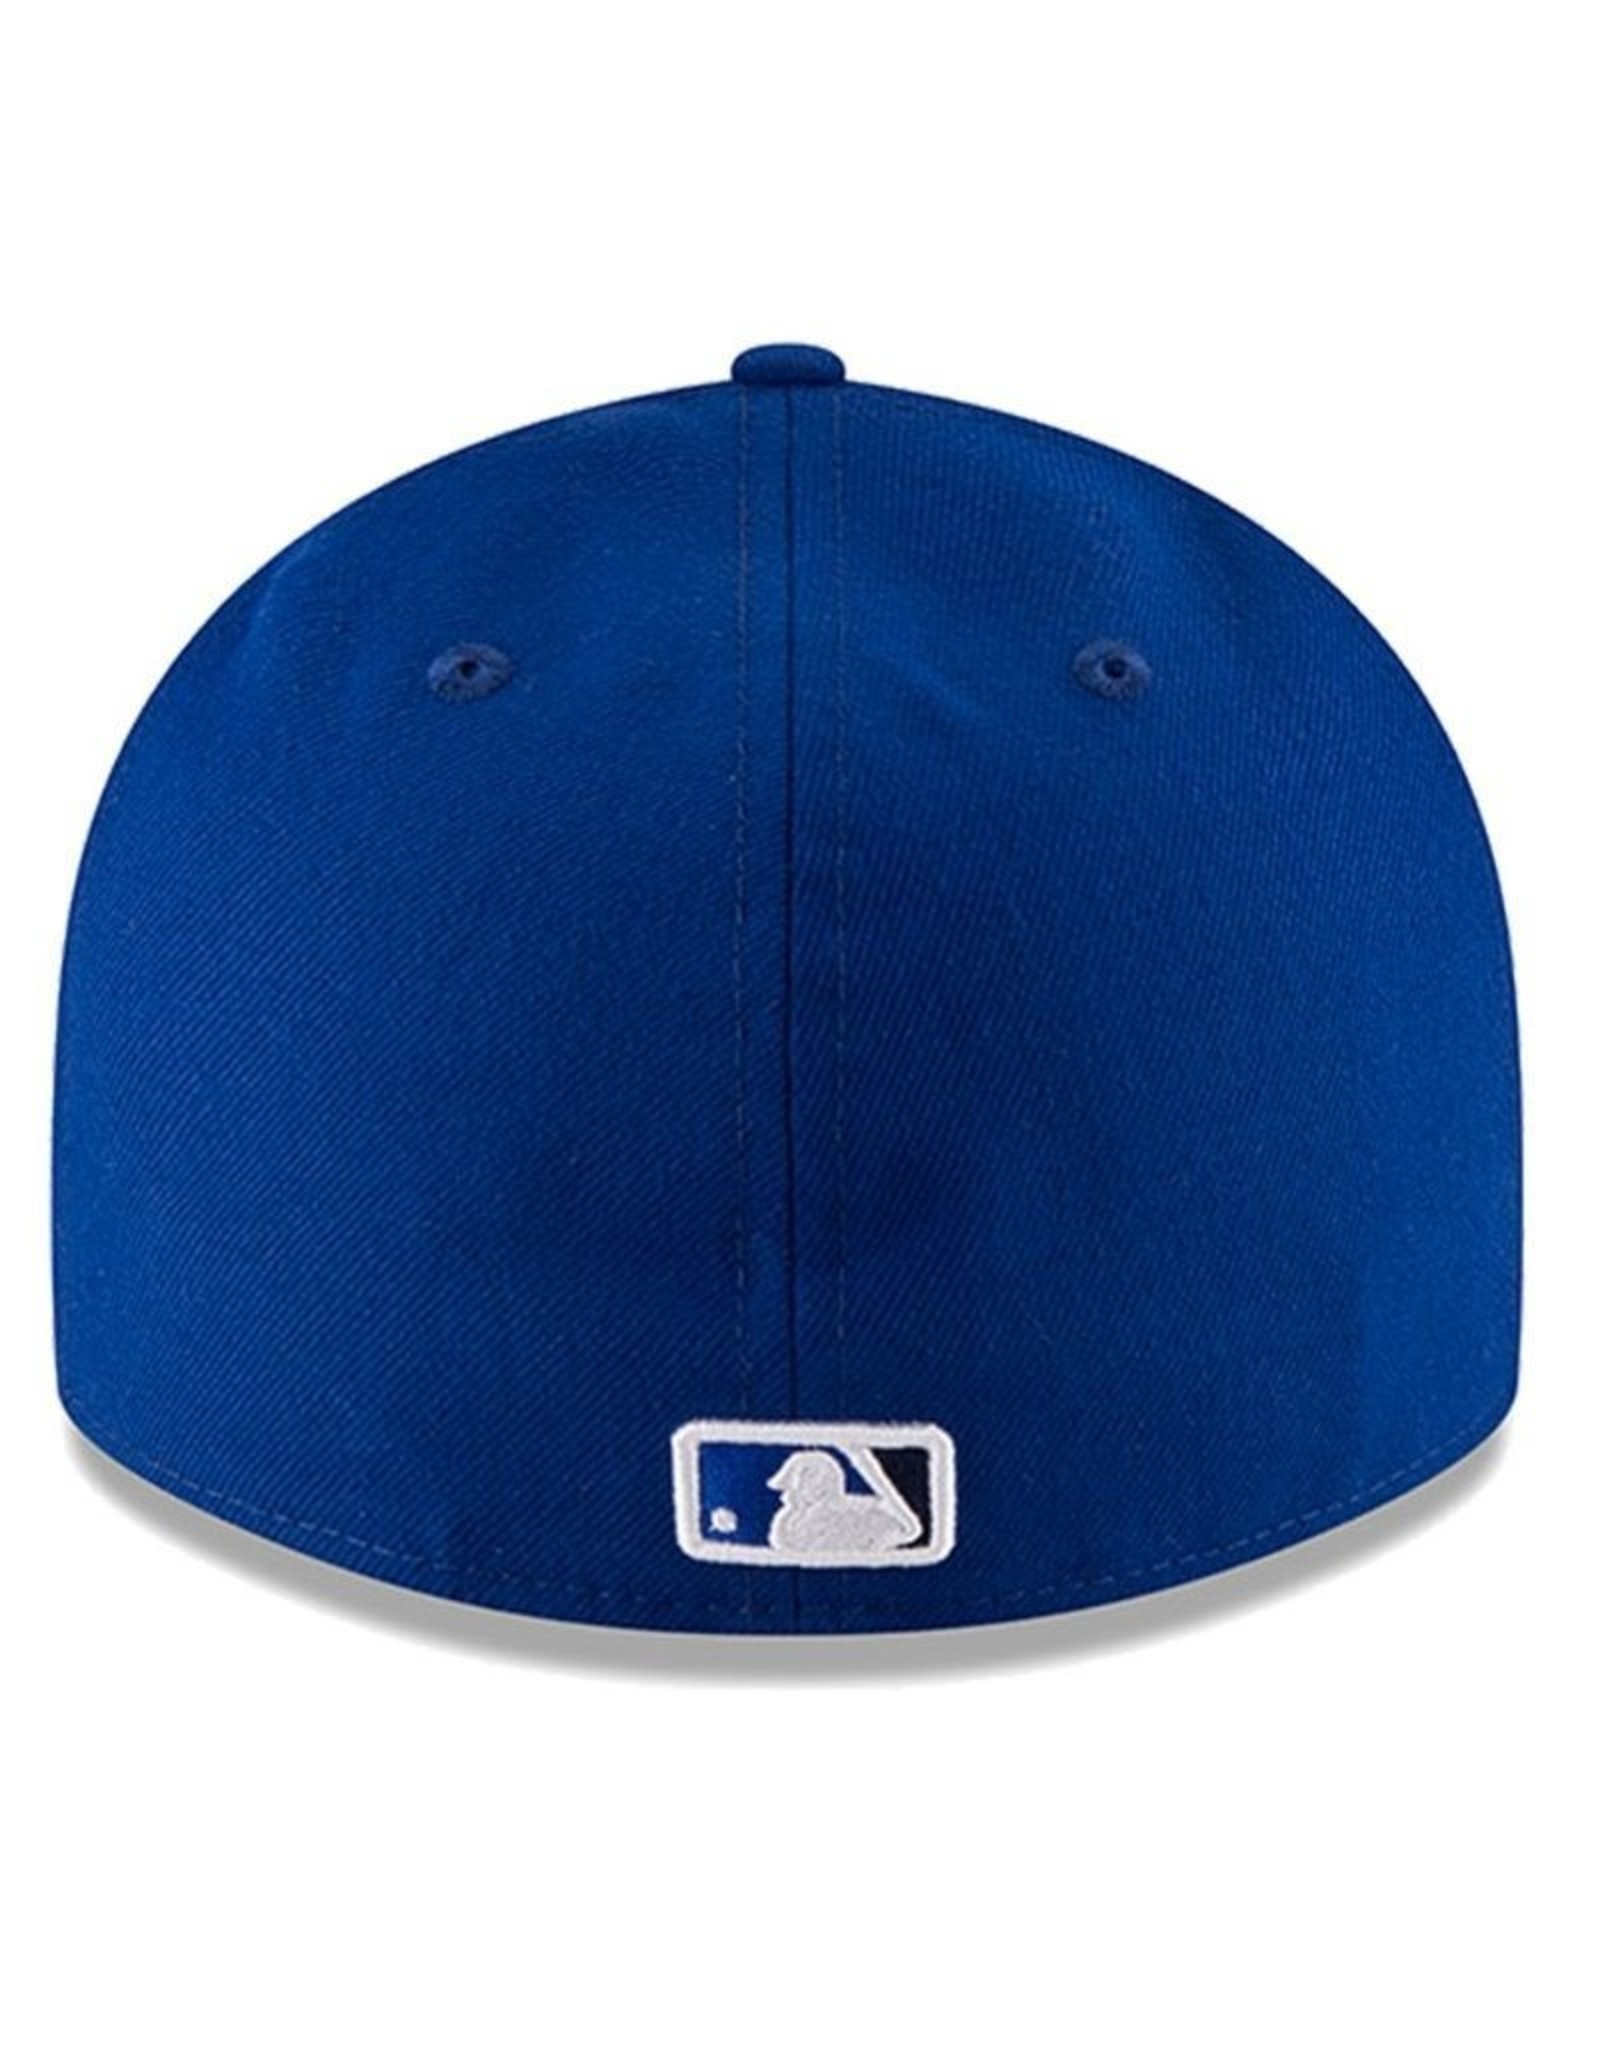 New Era On-Field Alternate 3 Hat Toronto Blue Jays